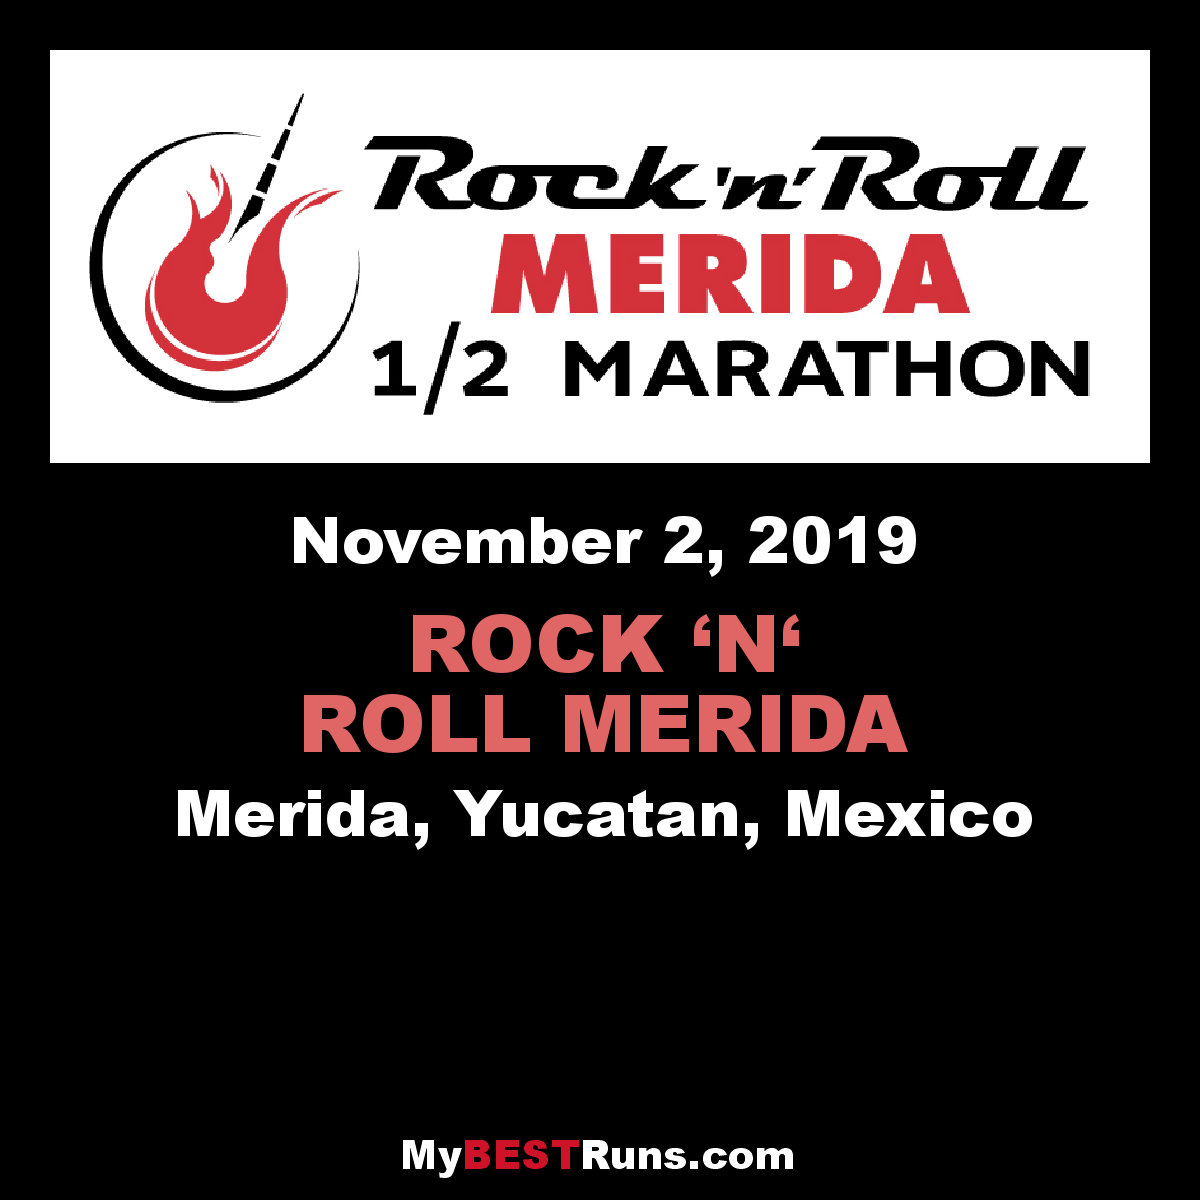 ROCK 'N' ROLL MERIDA